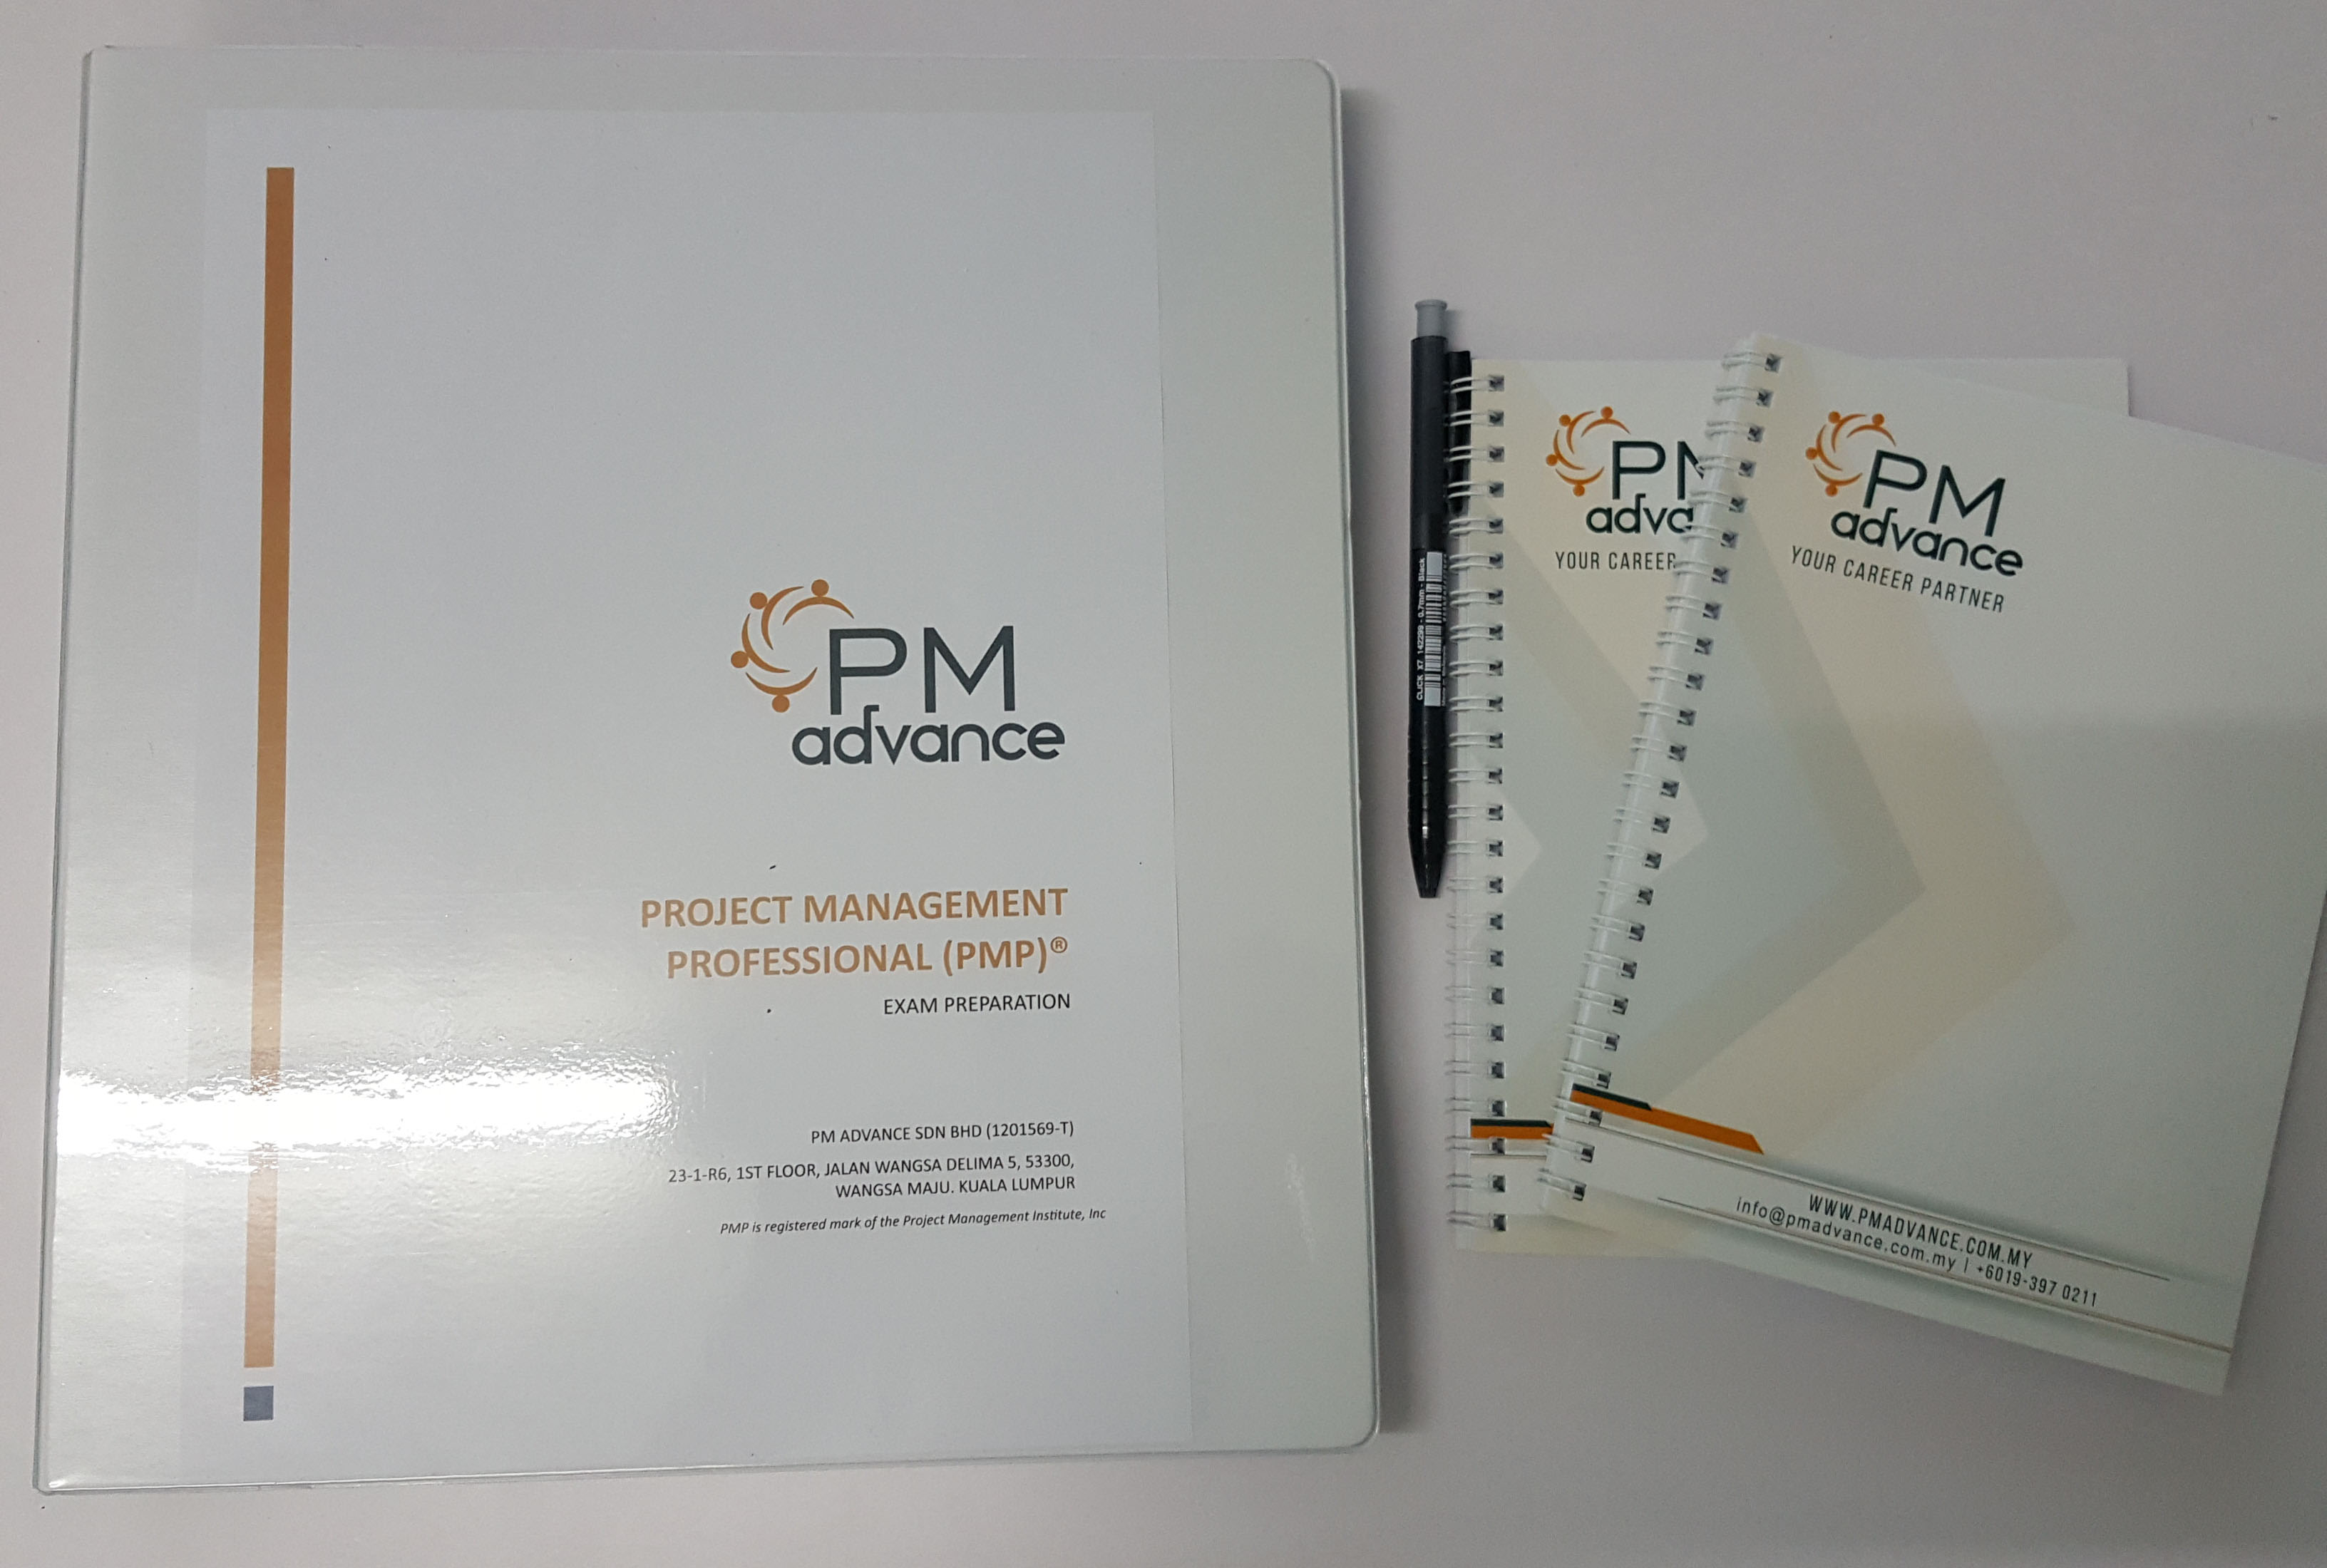 Training pm advance sdn bhd project management training in july 2017 pmp exam preparation training xflitez Gallery